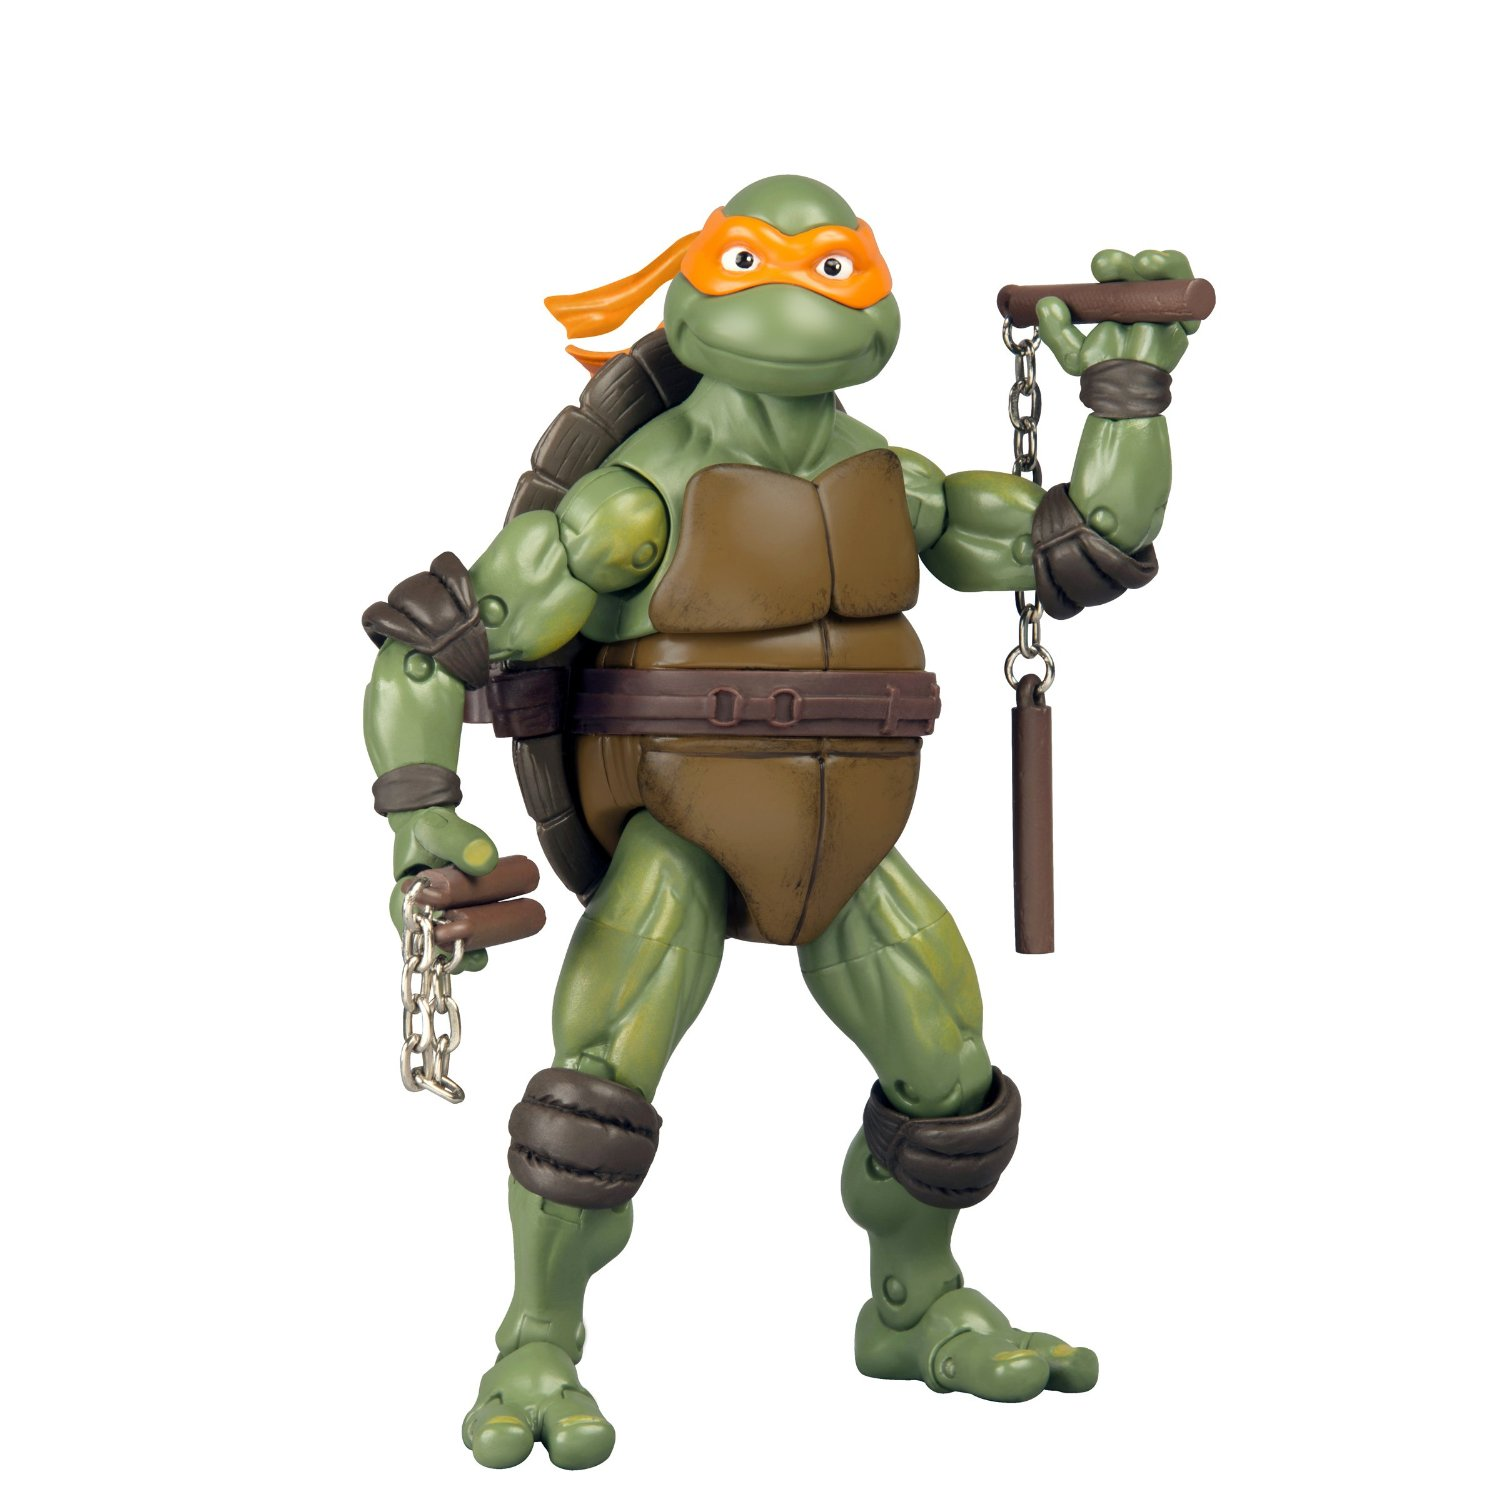 top 10 ninja turtles toys of 2014 crooked ninja ninja turtle clip art mask ninja turtles clip art birthdays